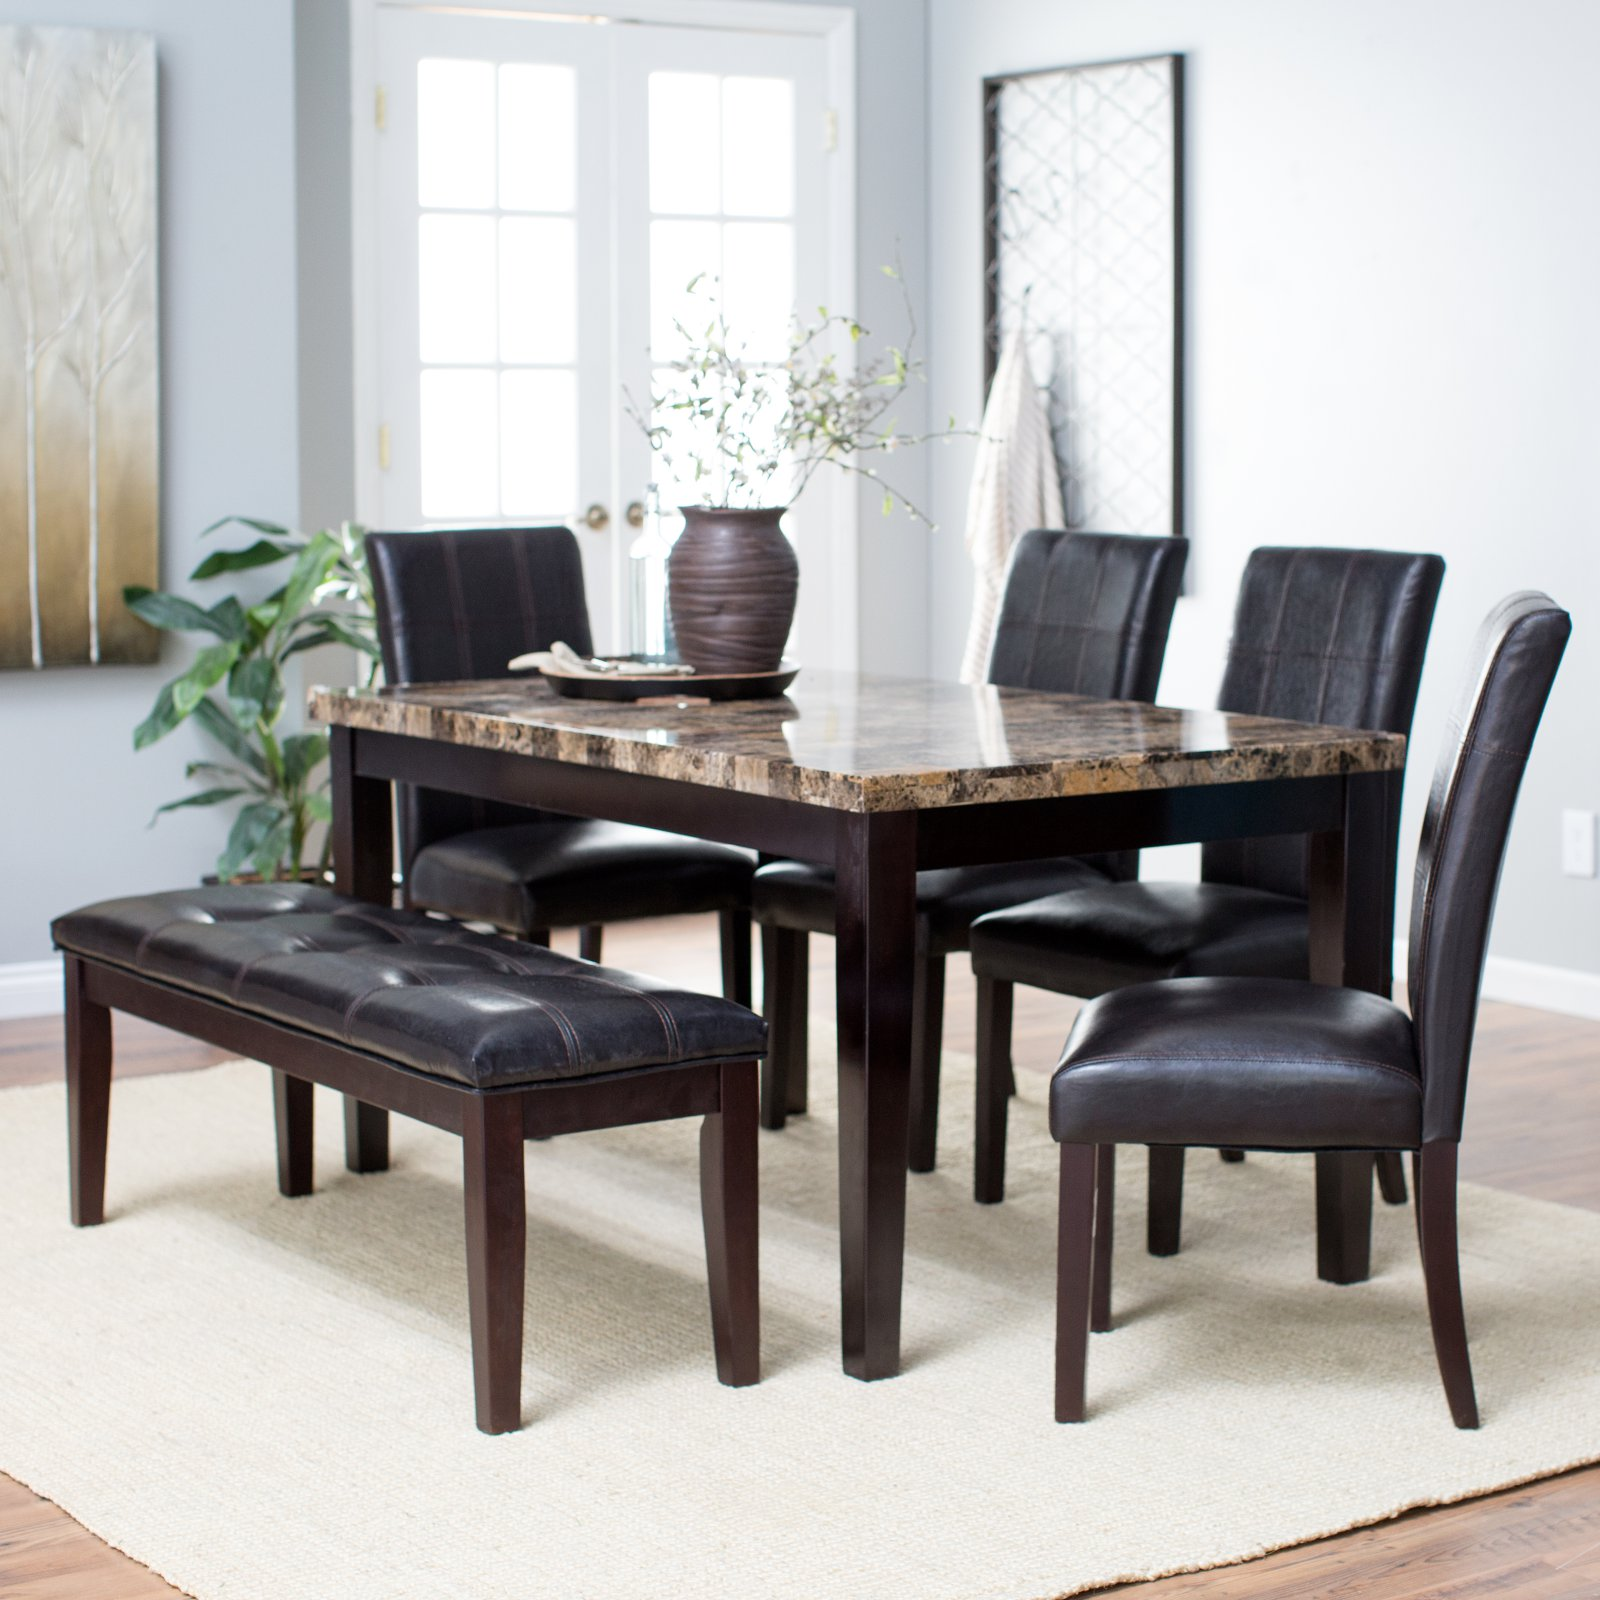 Finley Home Palazzo 6 Piece Dining Room Set with Bench by Weicheng (HK) Industrial Trade Co Ltd